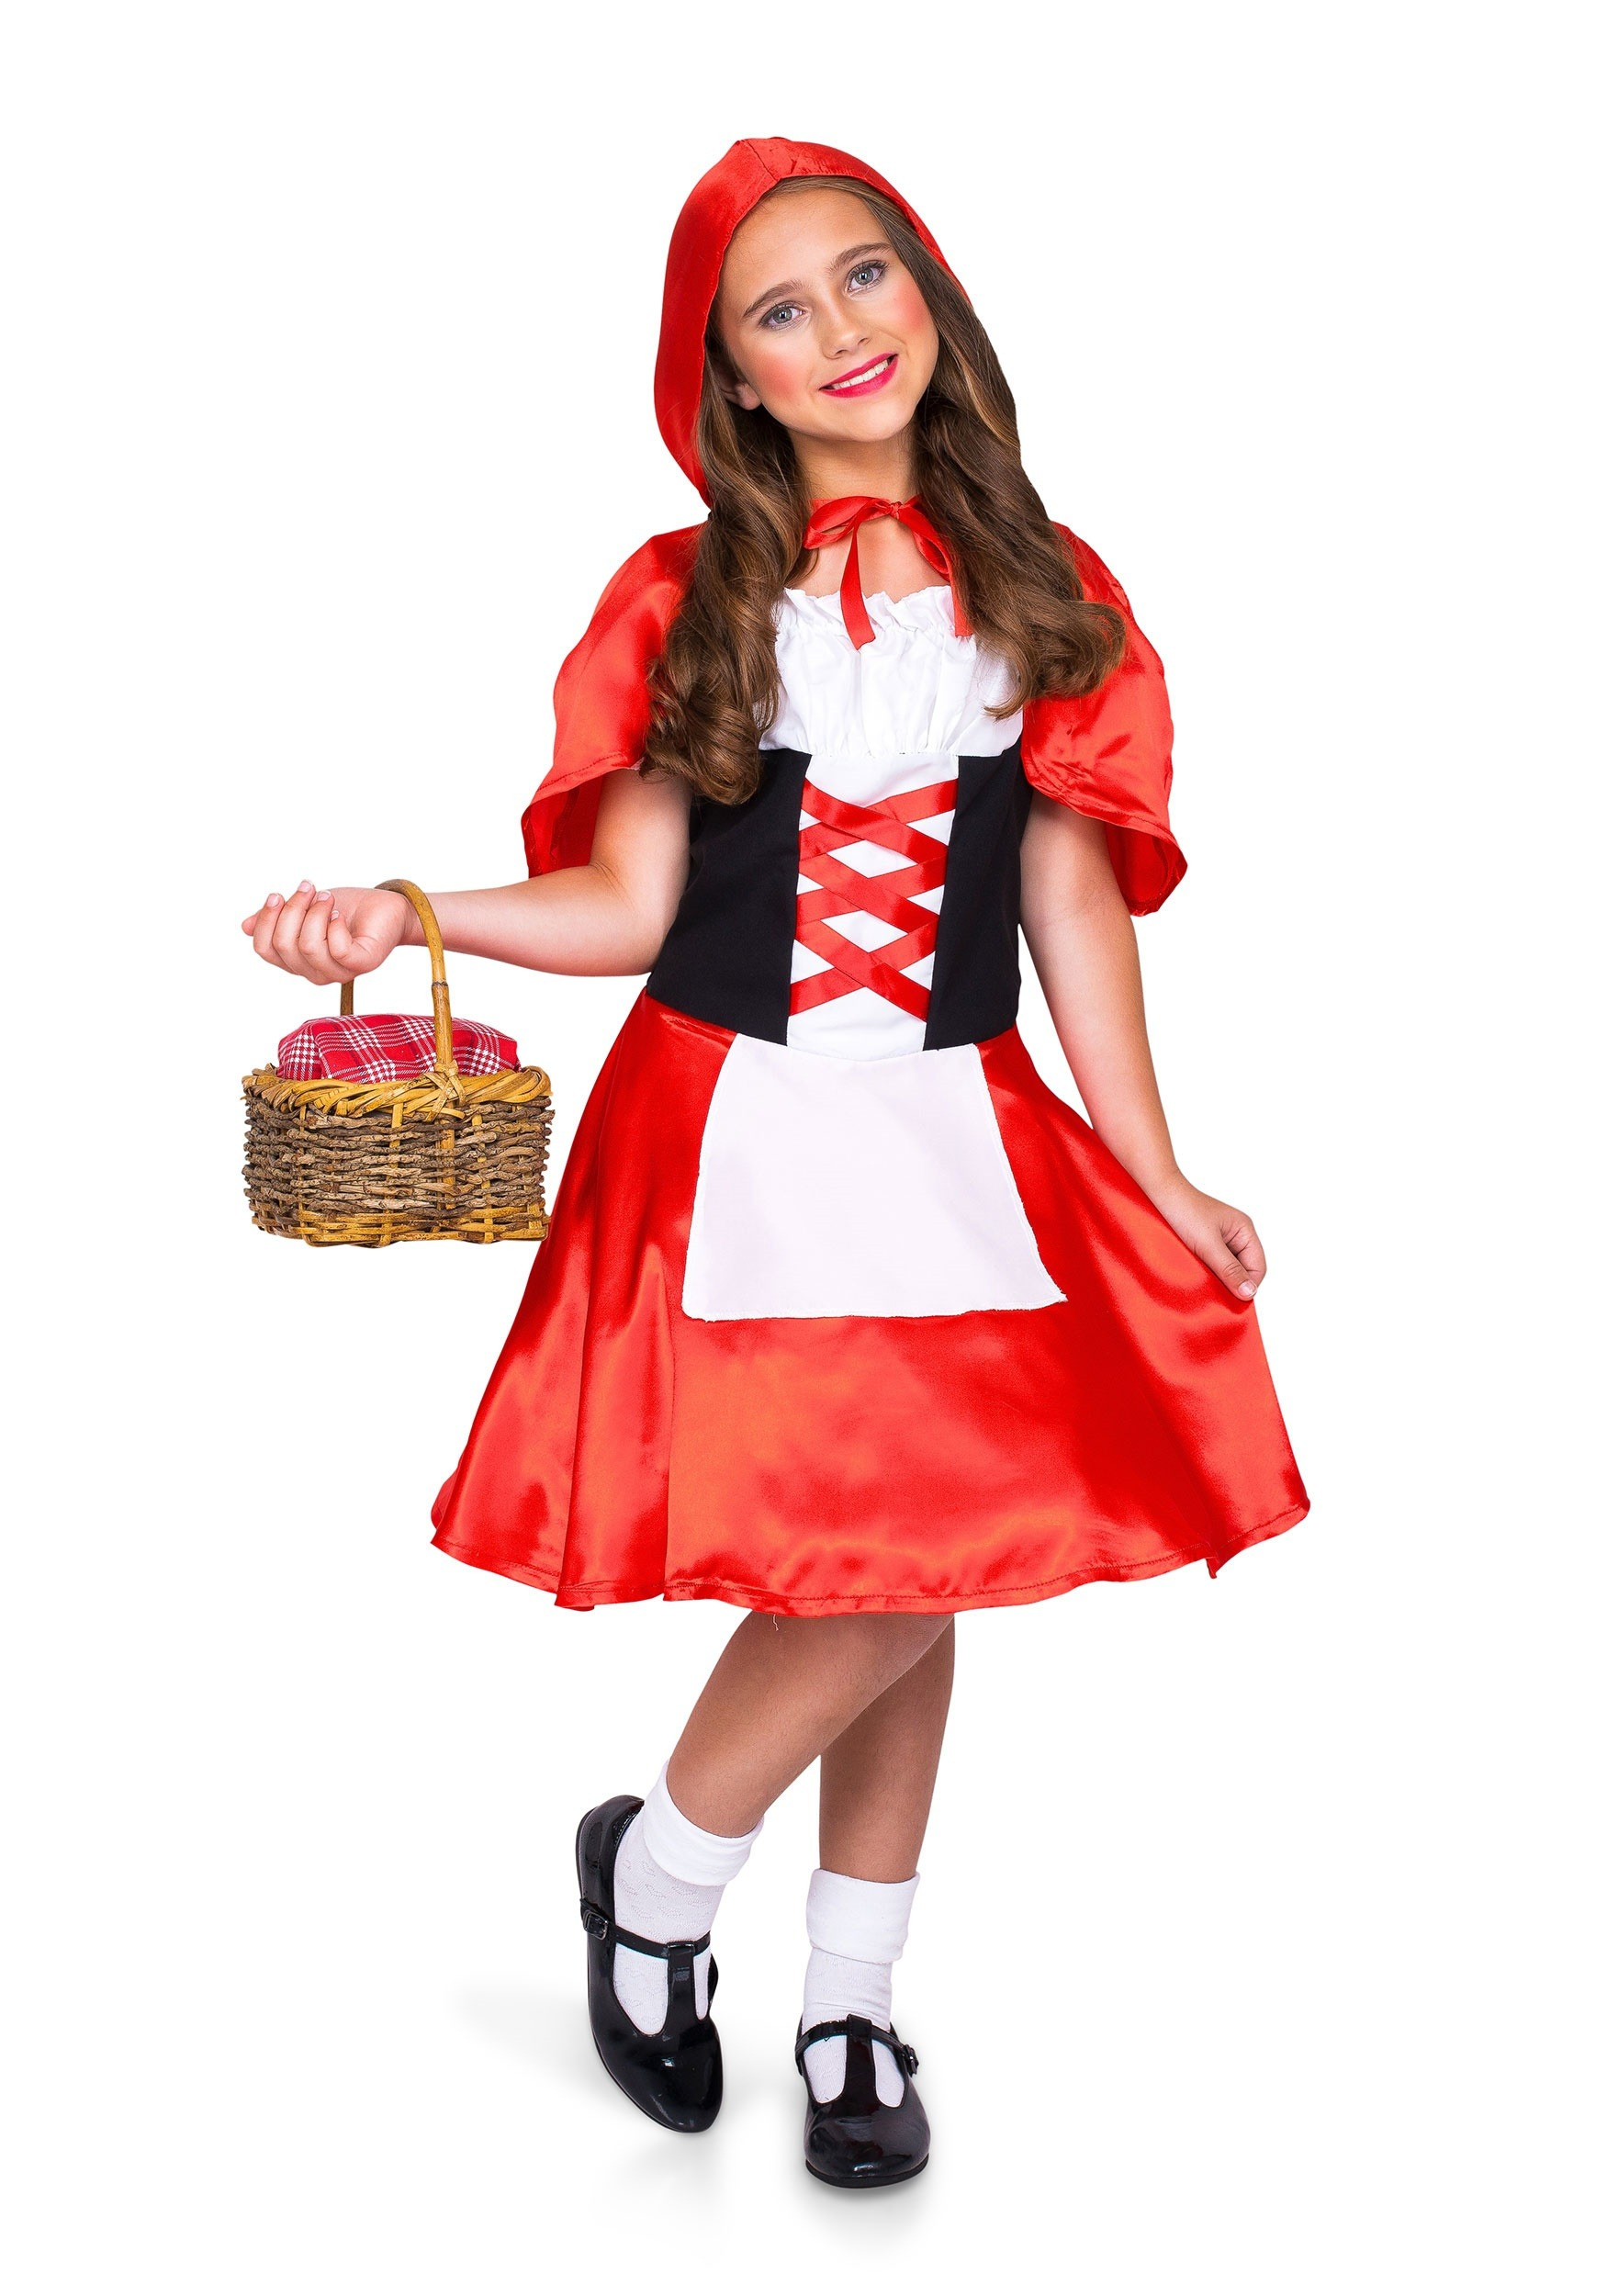 Red Riding Hood Costume For Girl S